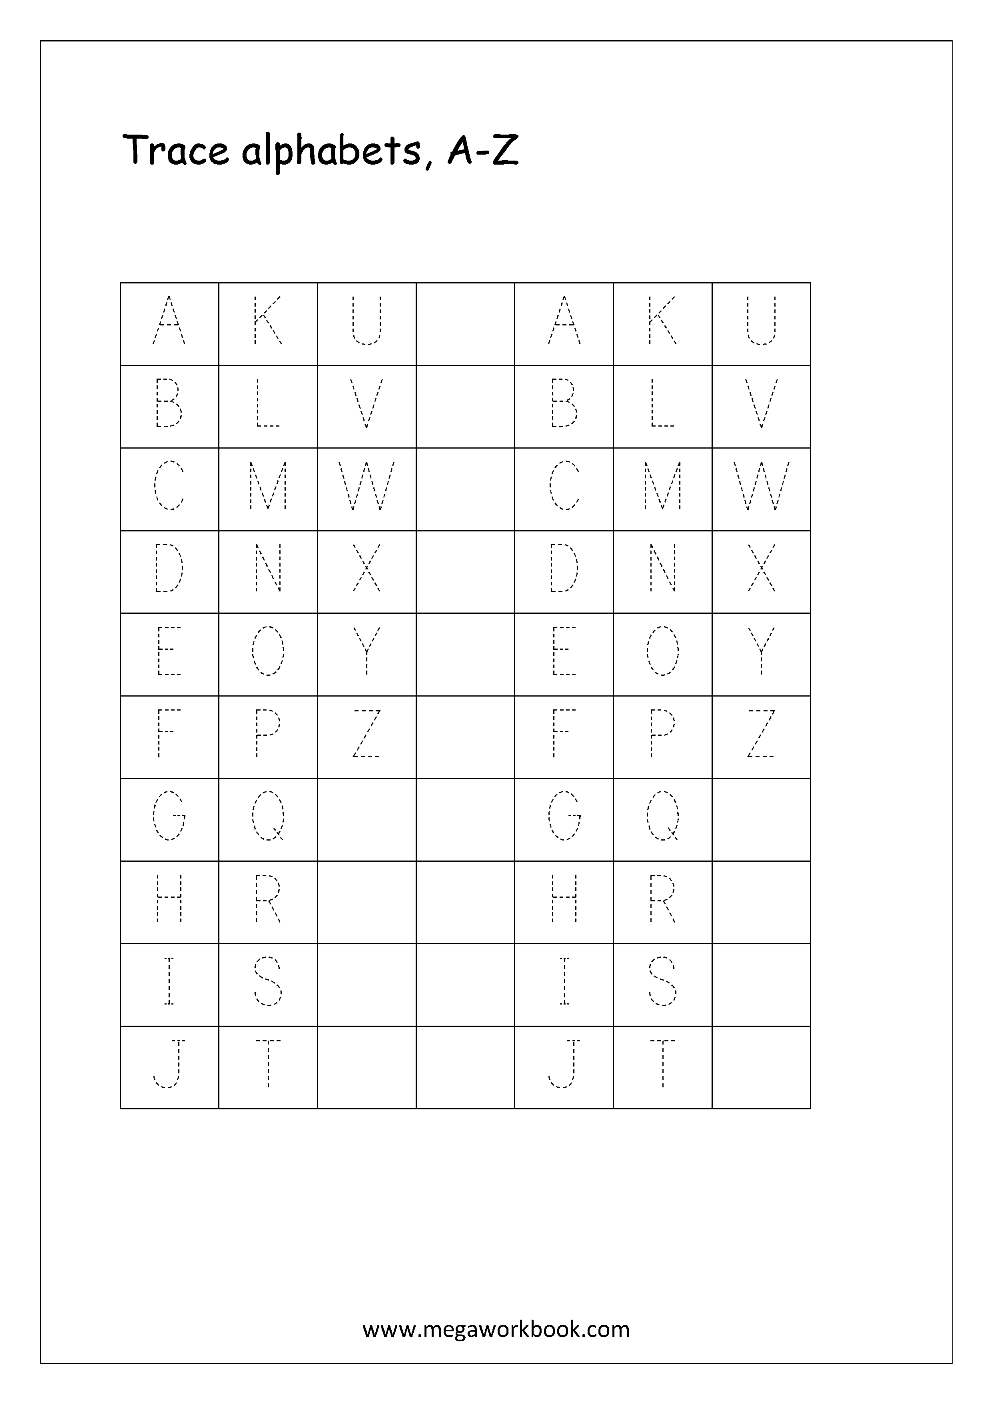 Worksheets Printable Alphabet Worksheets A-z free english worksheets alphabet tracing capital letters worksheet a to z